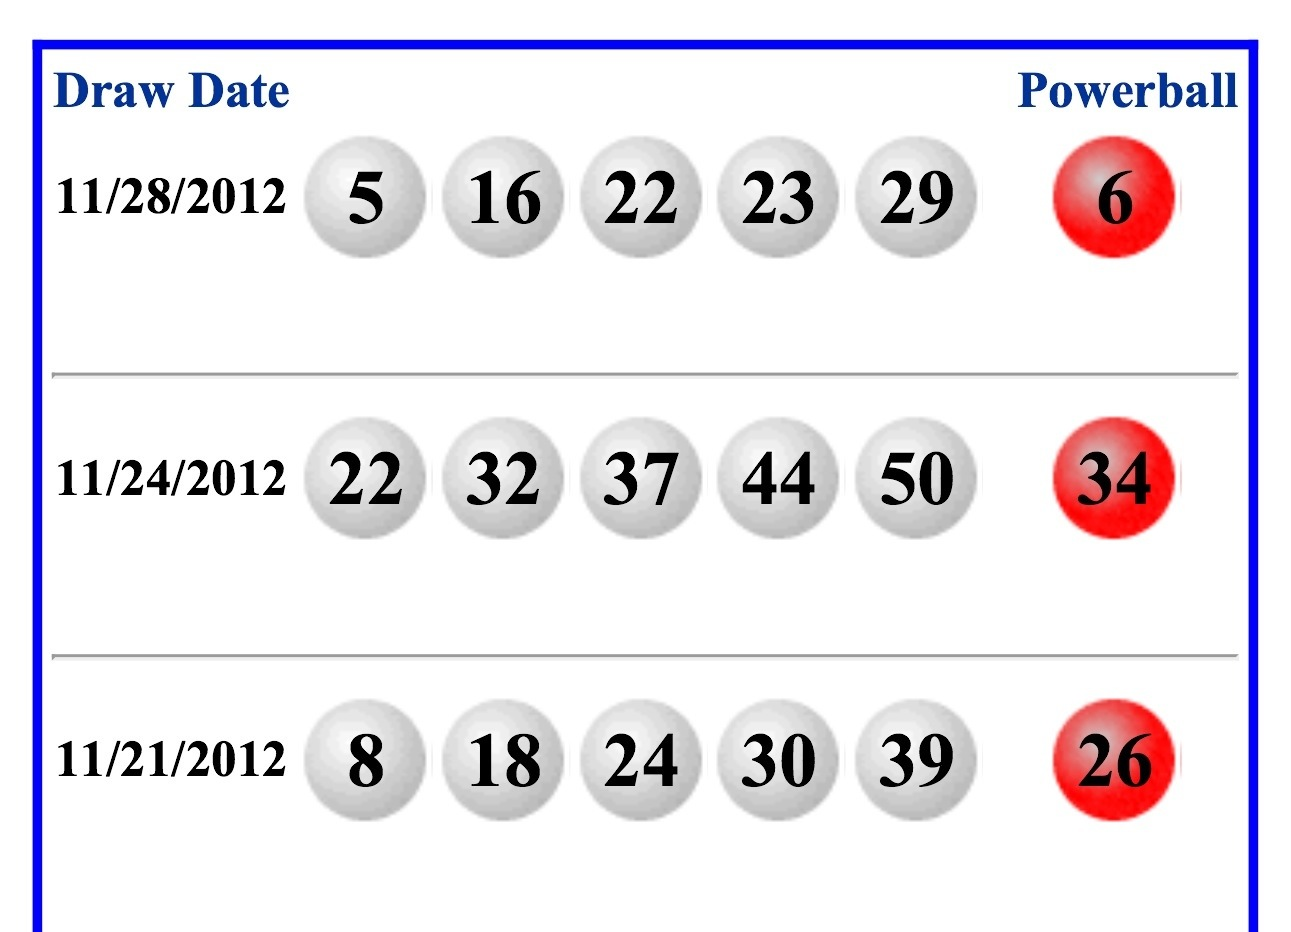 oklahoma powerball lottery winning numbers photo - 1